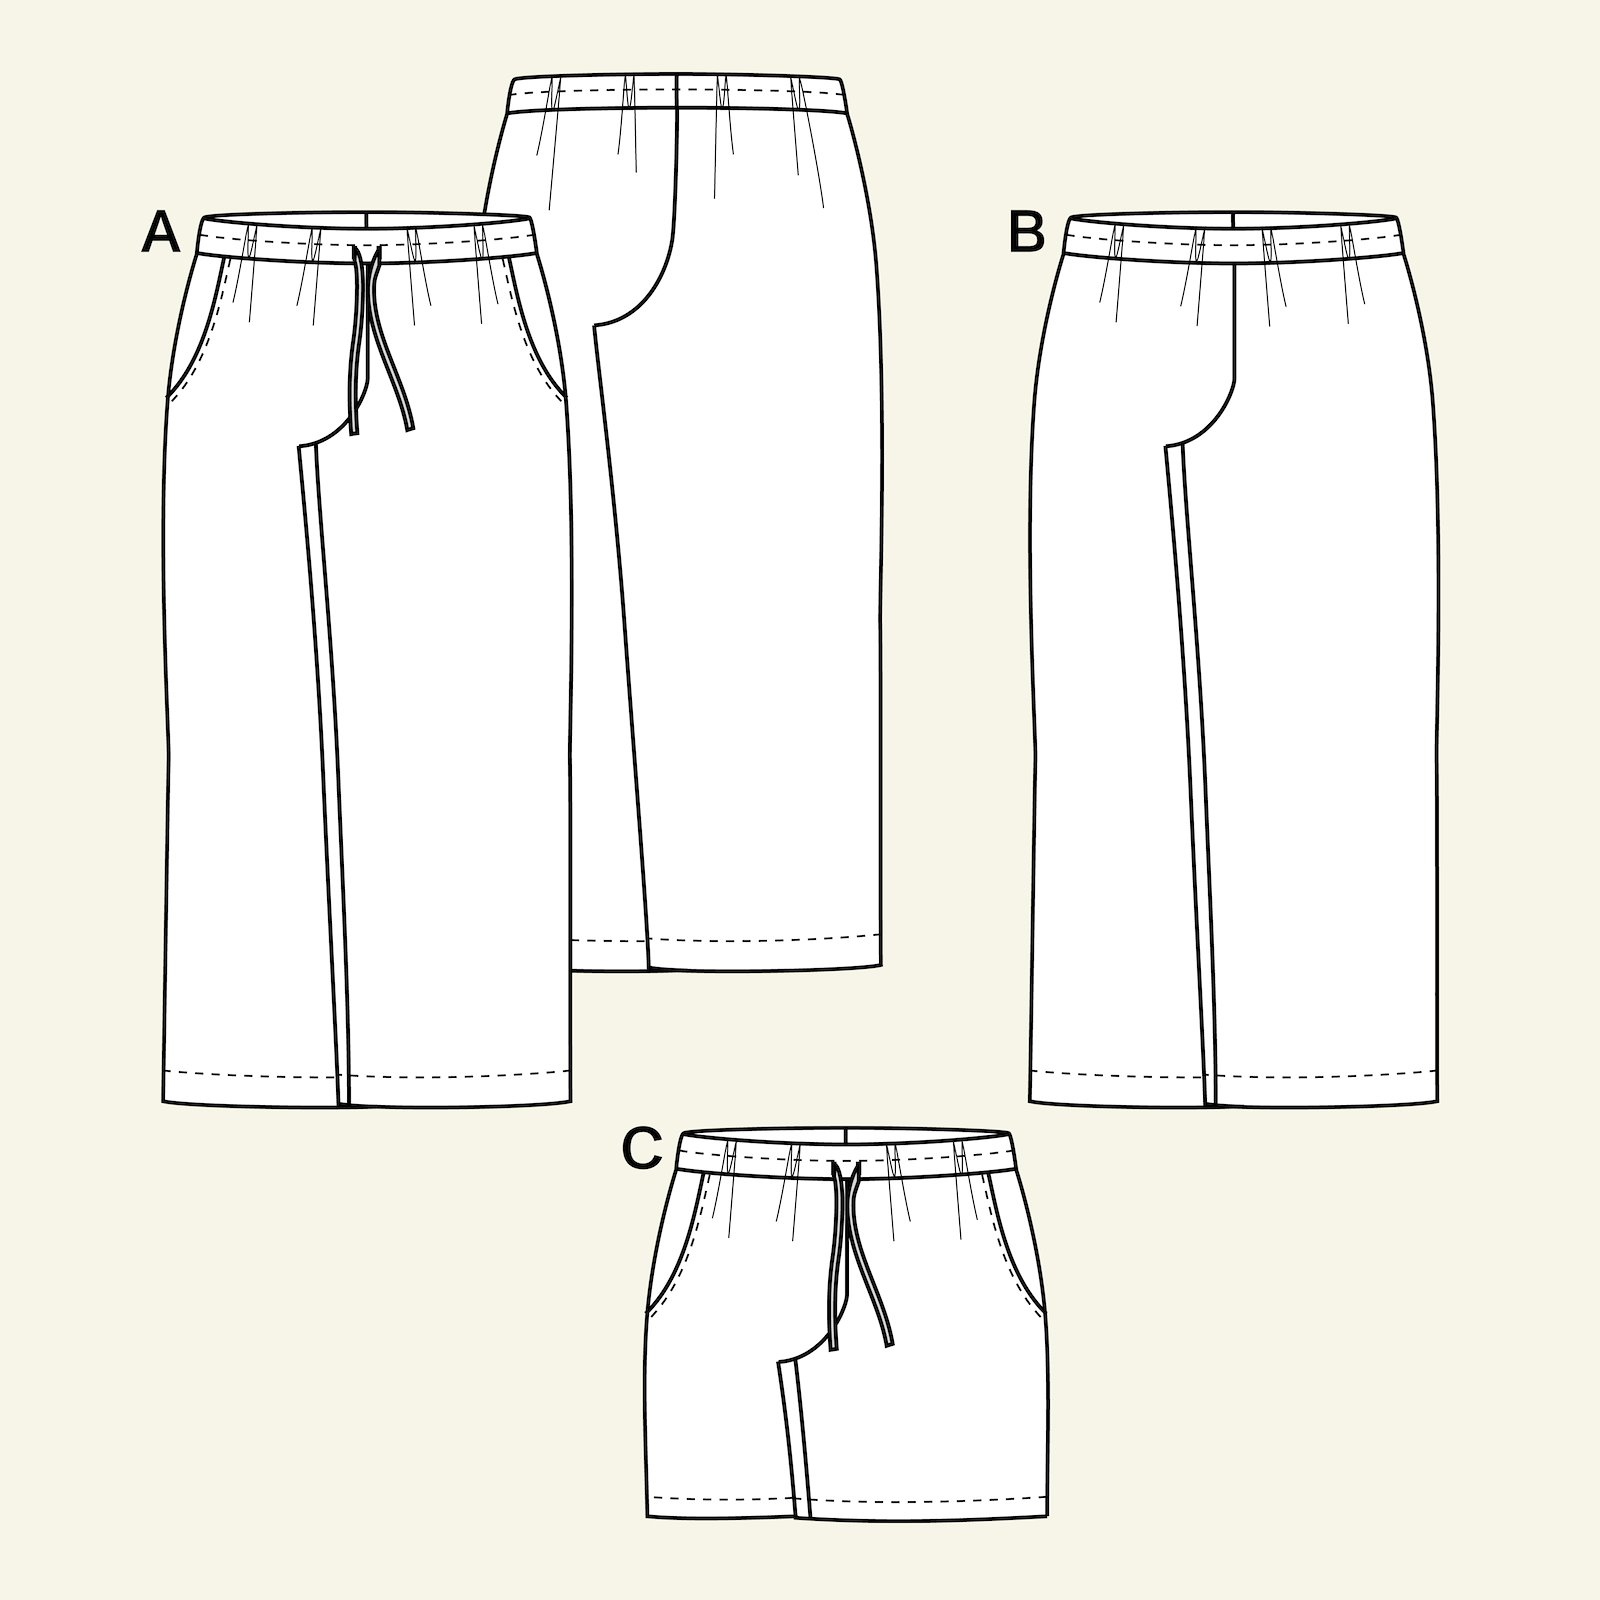 Wide trousers/shorts w. pockets, 42/14 p20051_pack